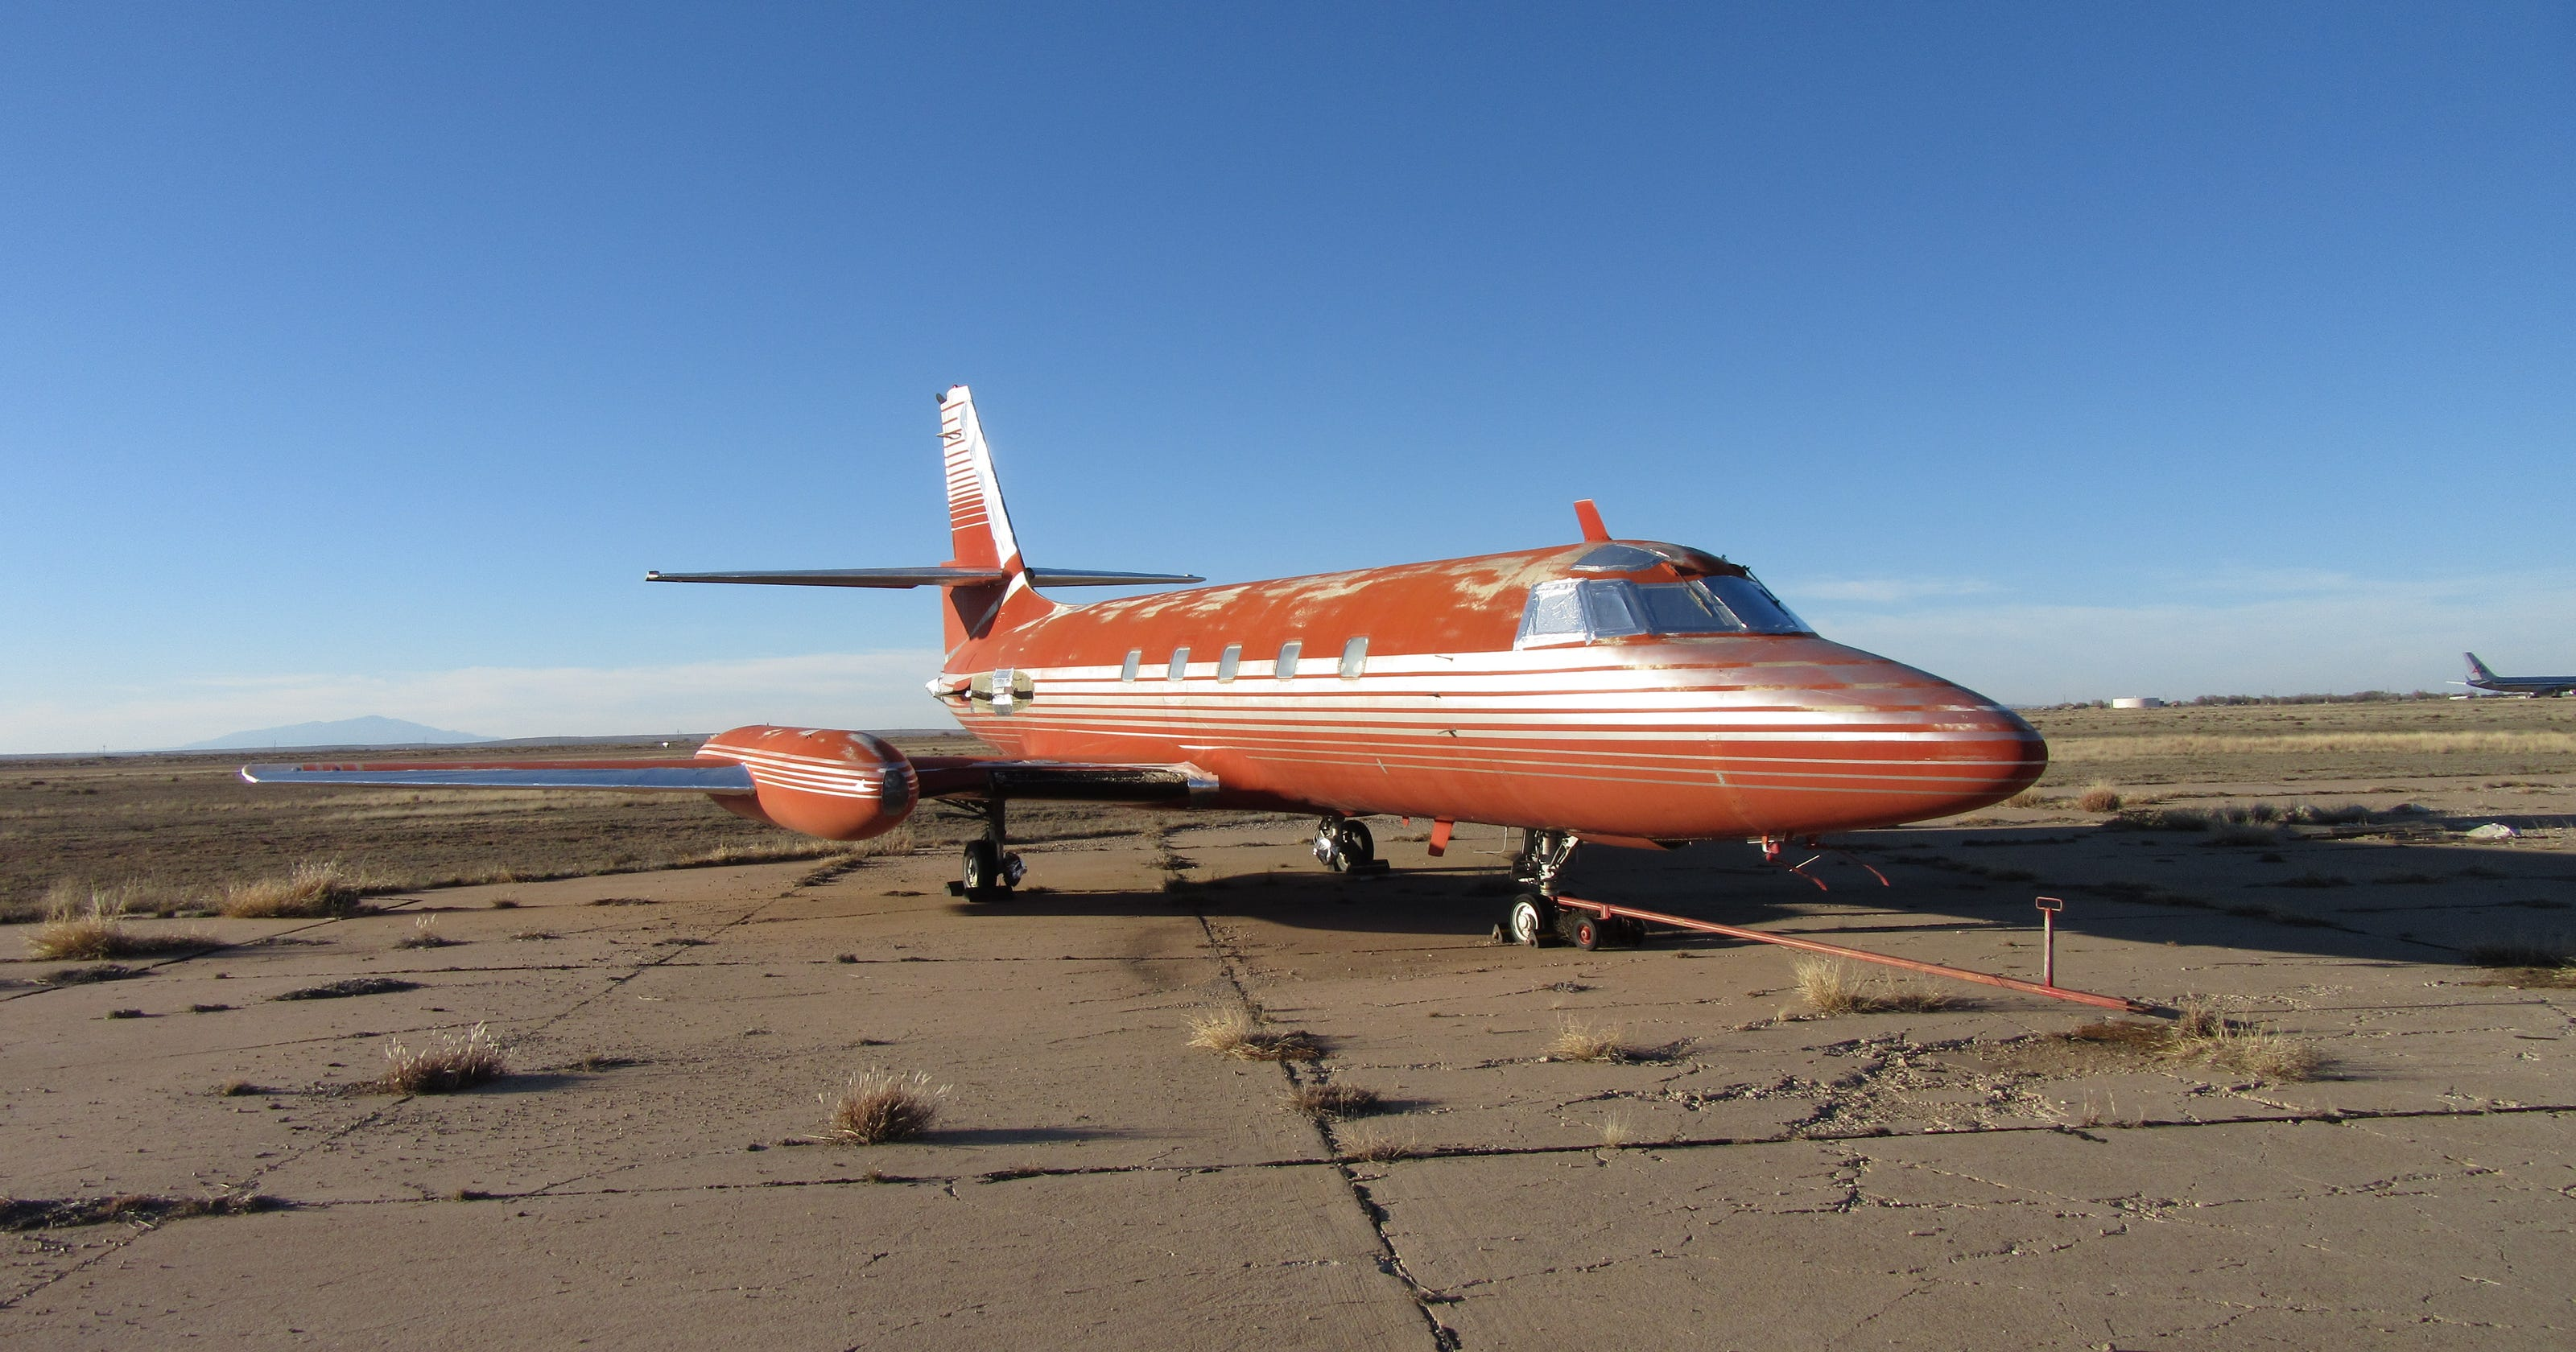 Elvis Presley's private jet is up for sale     'as is'